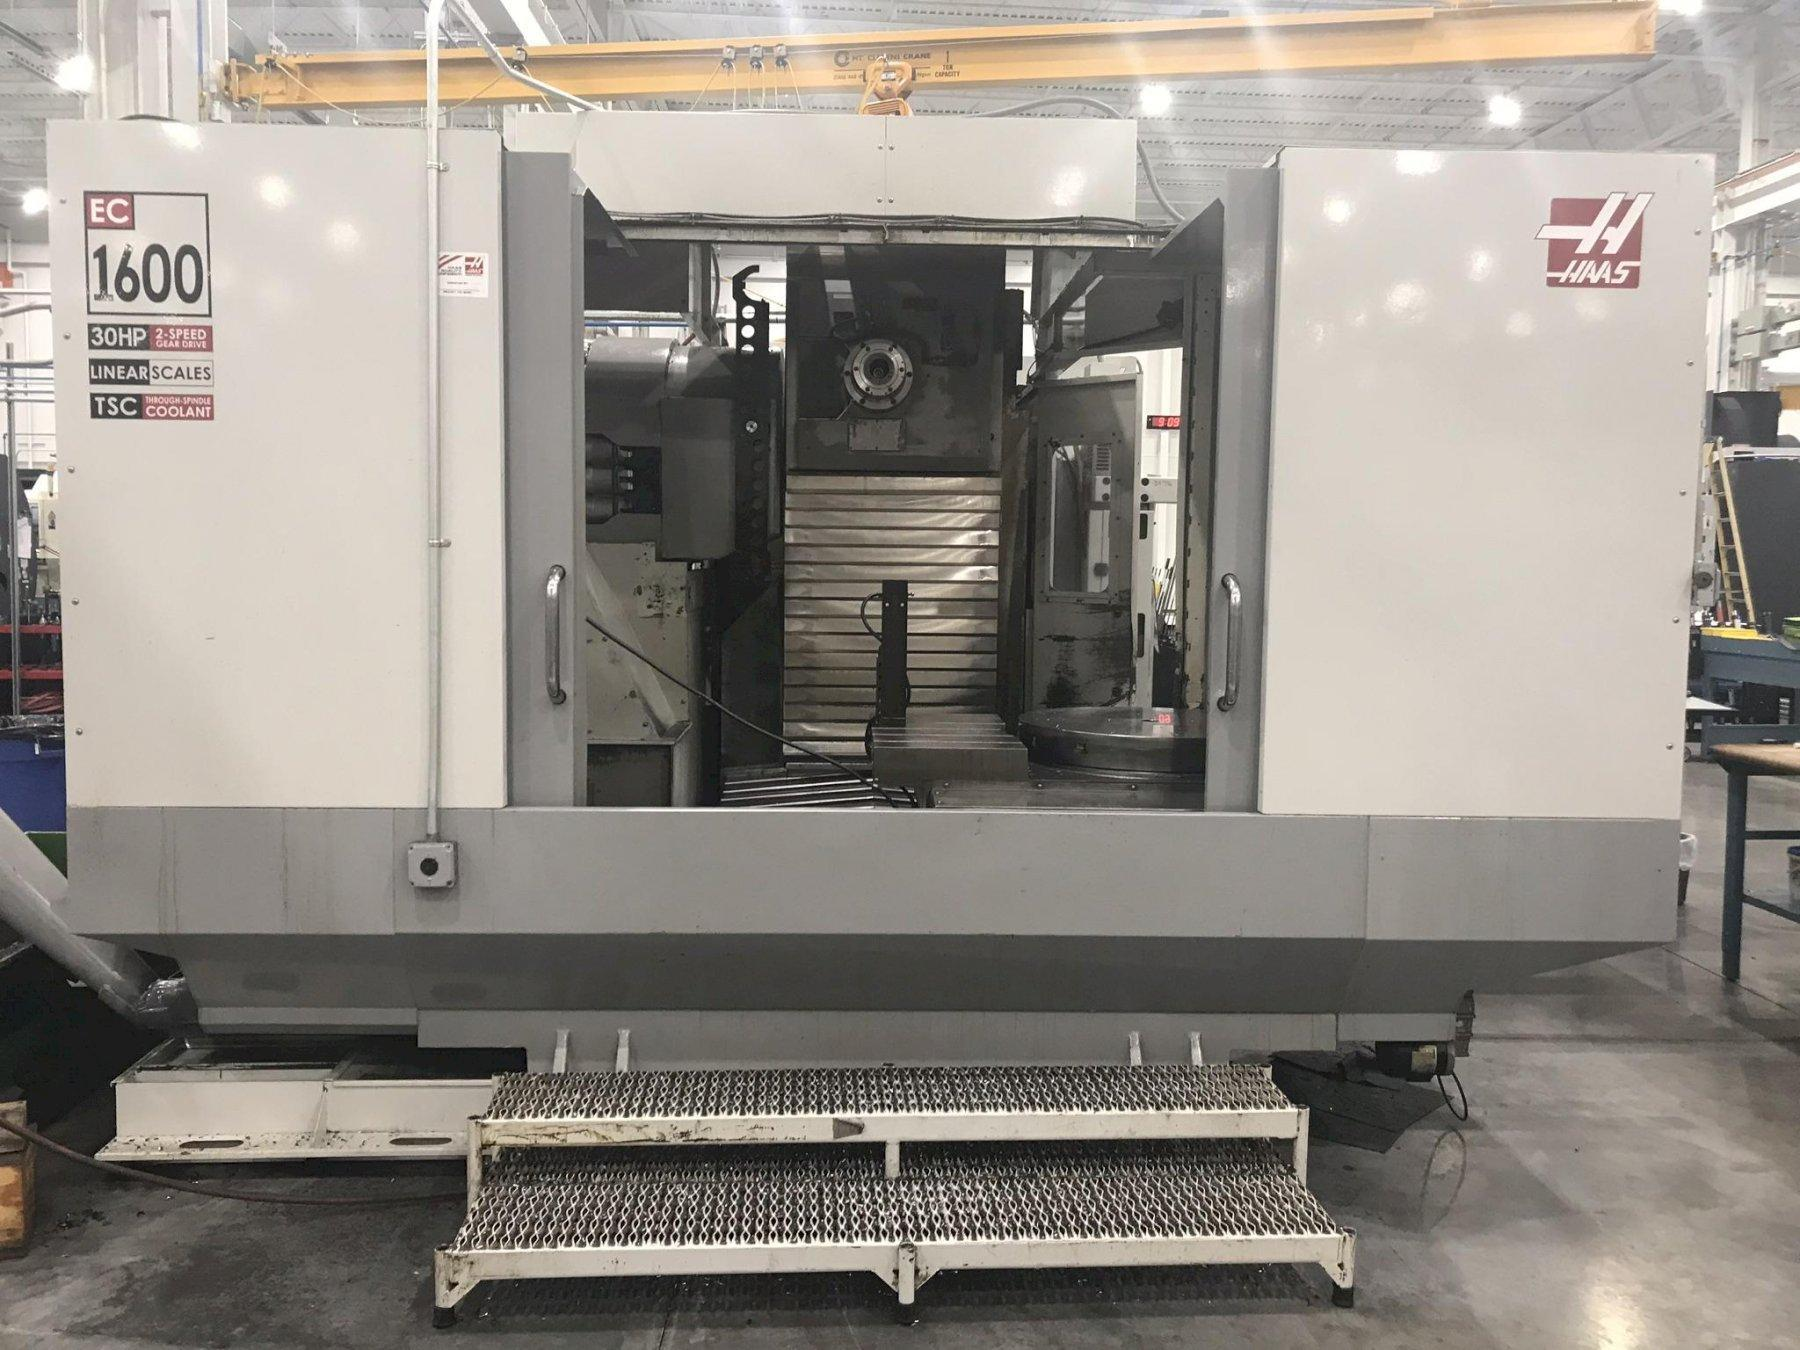 USED HAAS MODEL EC-1600 HORIZONTAL CNC MACHINING CENTER WITH BUILT IN ROTARY TABLE